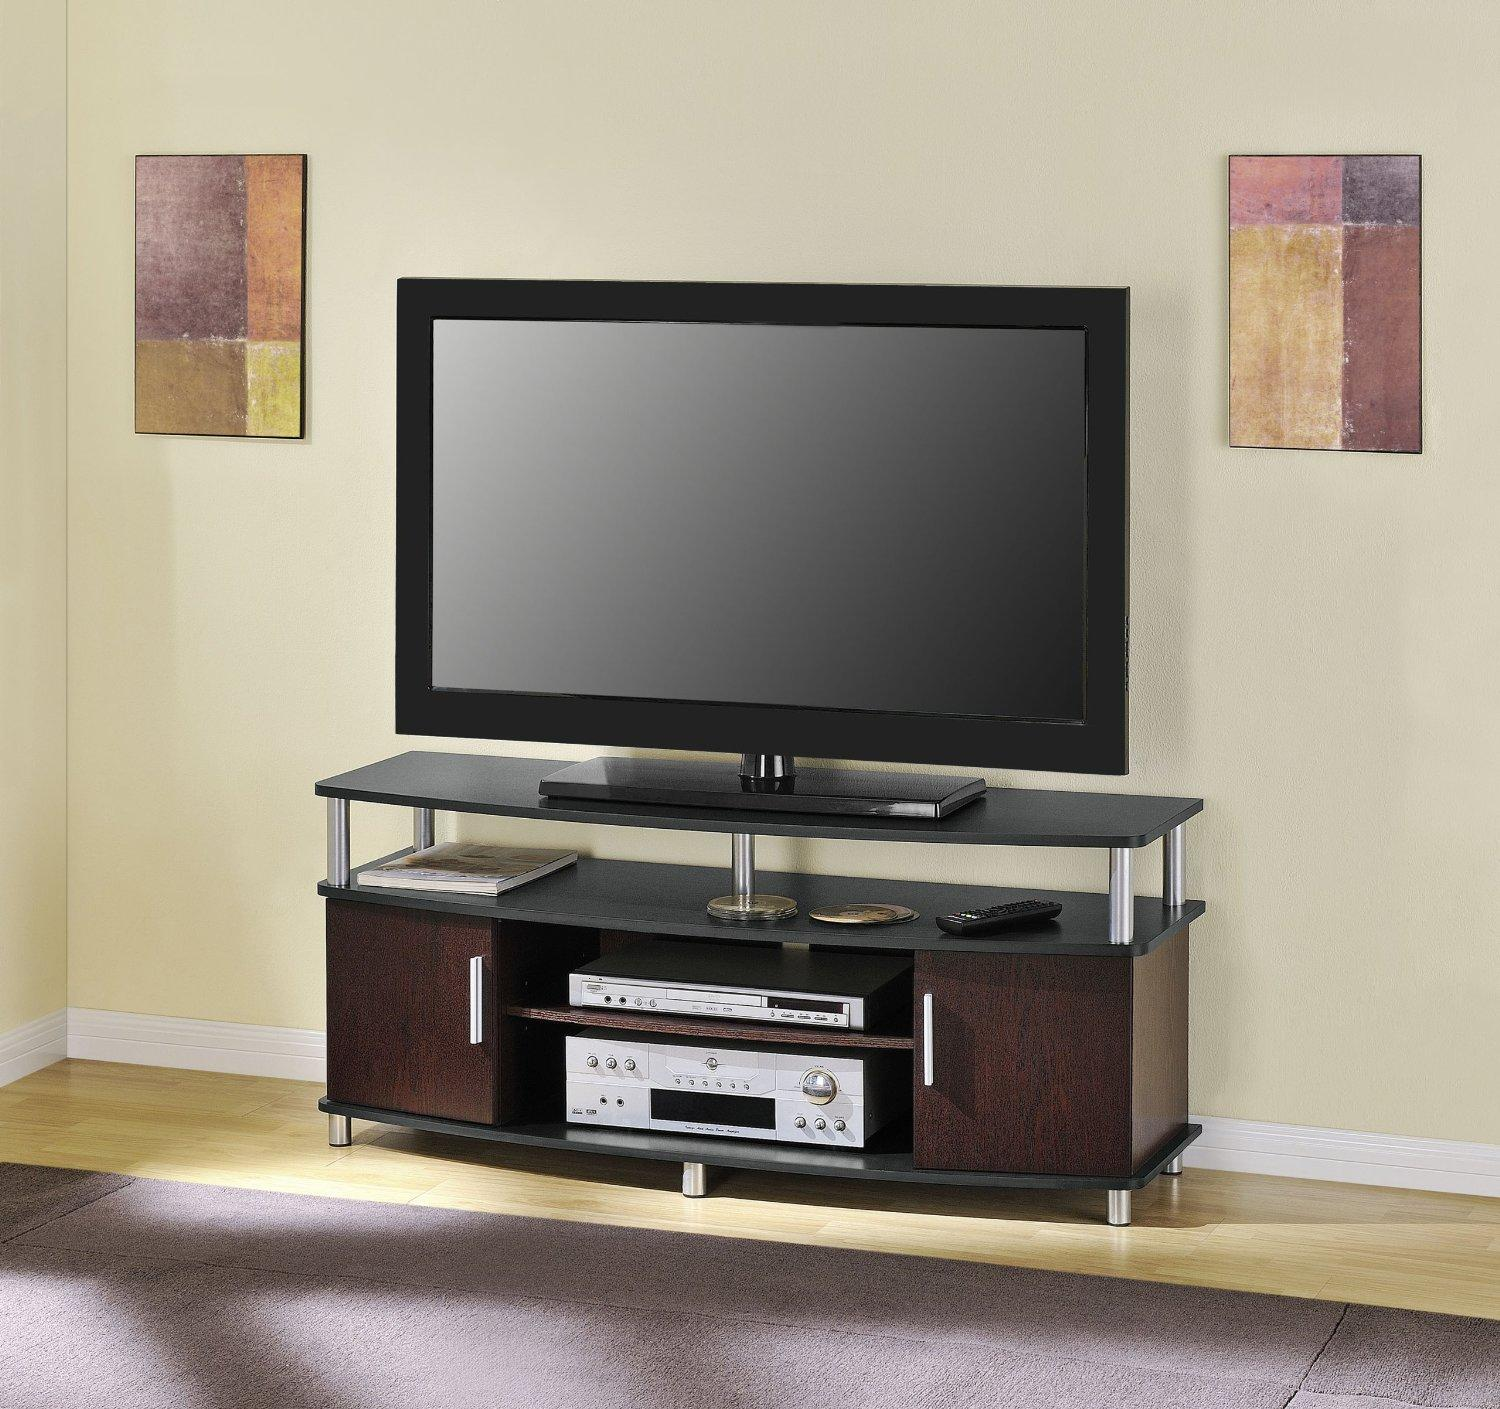 Altra Furniture Carson TV Stand, For TV's up to 50-Inches, Black/Cherry